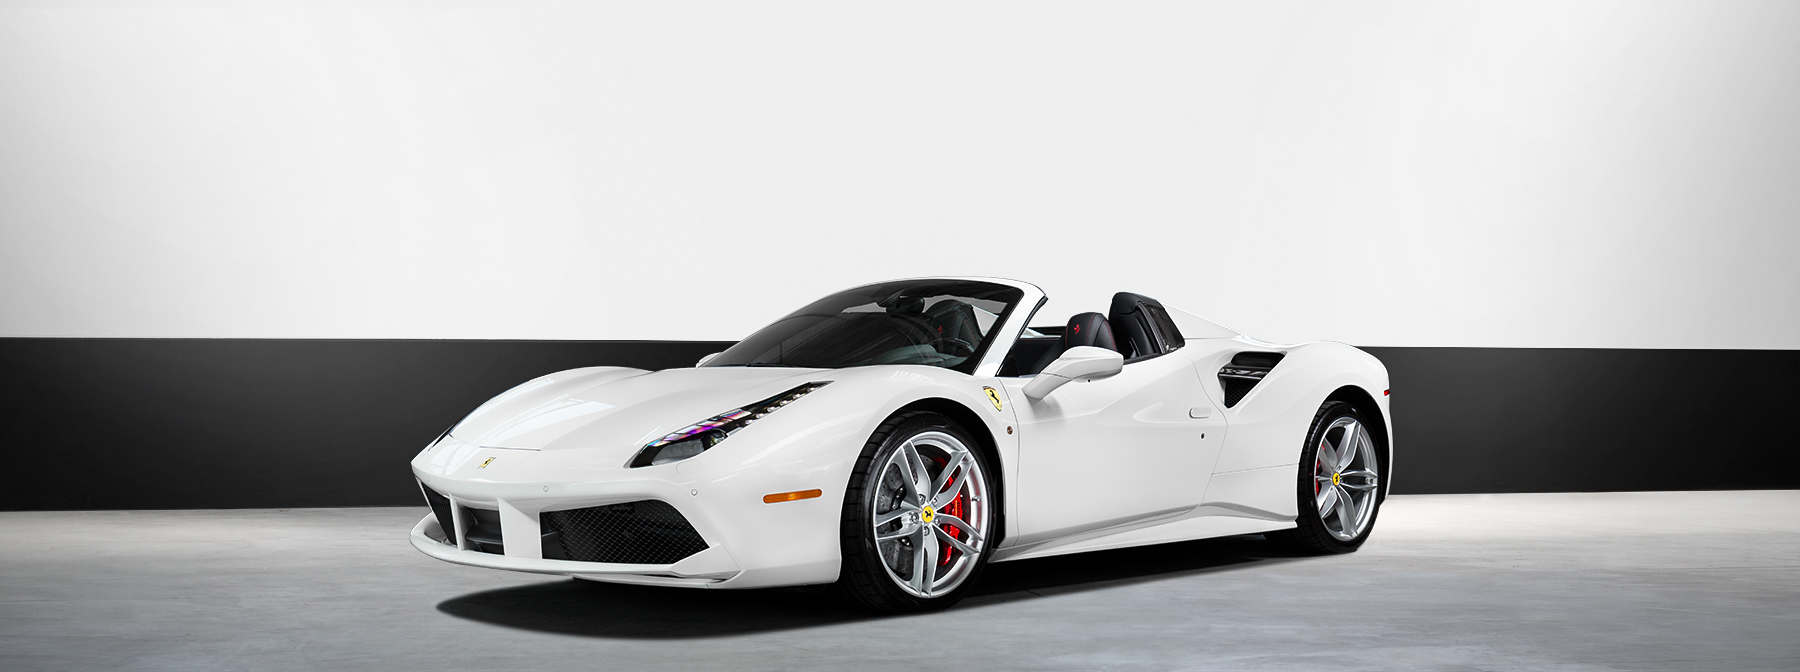 We Have Just Upgraded Our White Ferrari 488 Spider, This Brand New Exotic  Convertible Rental Now Includes A Special Sport Package Featuring Upgraded  Factory ...